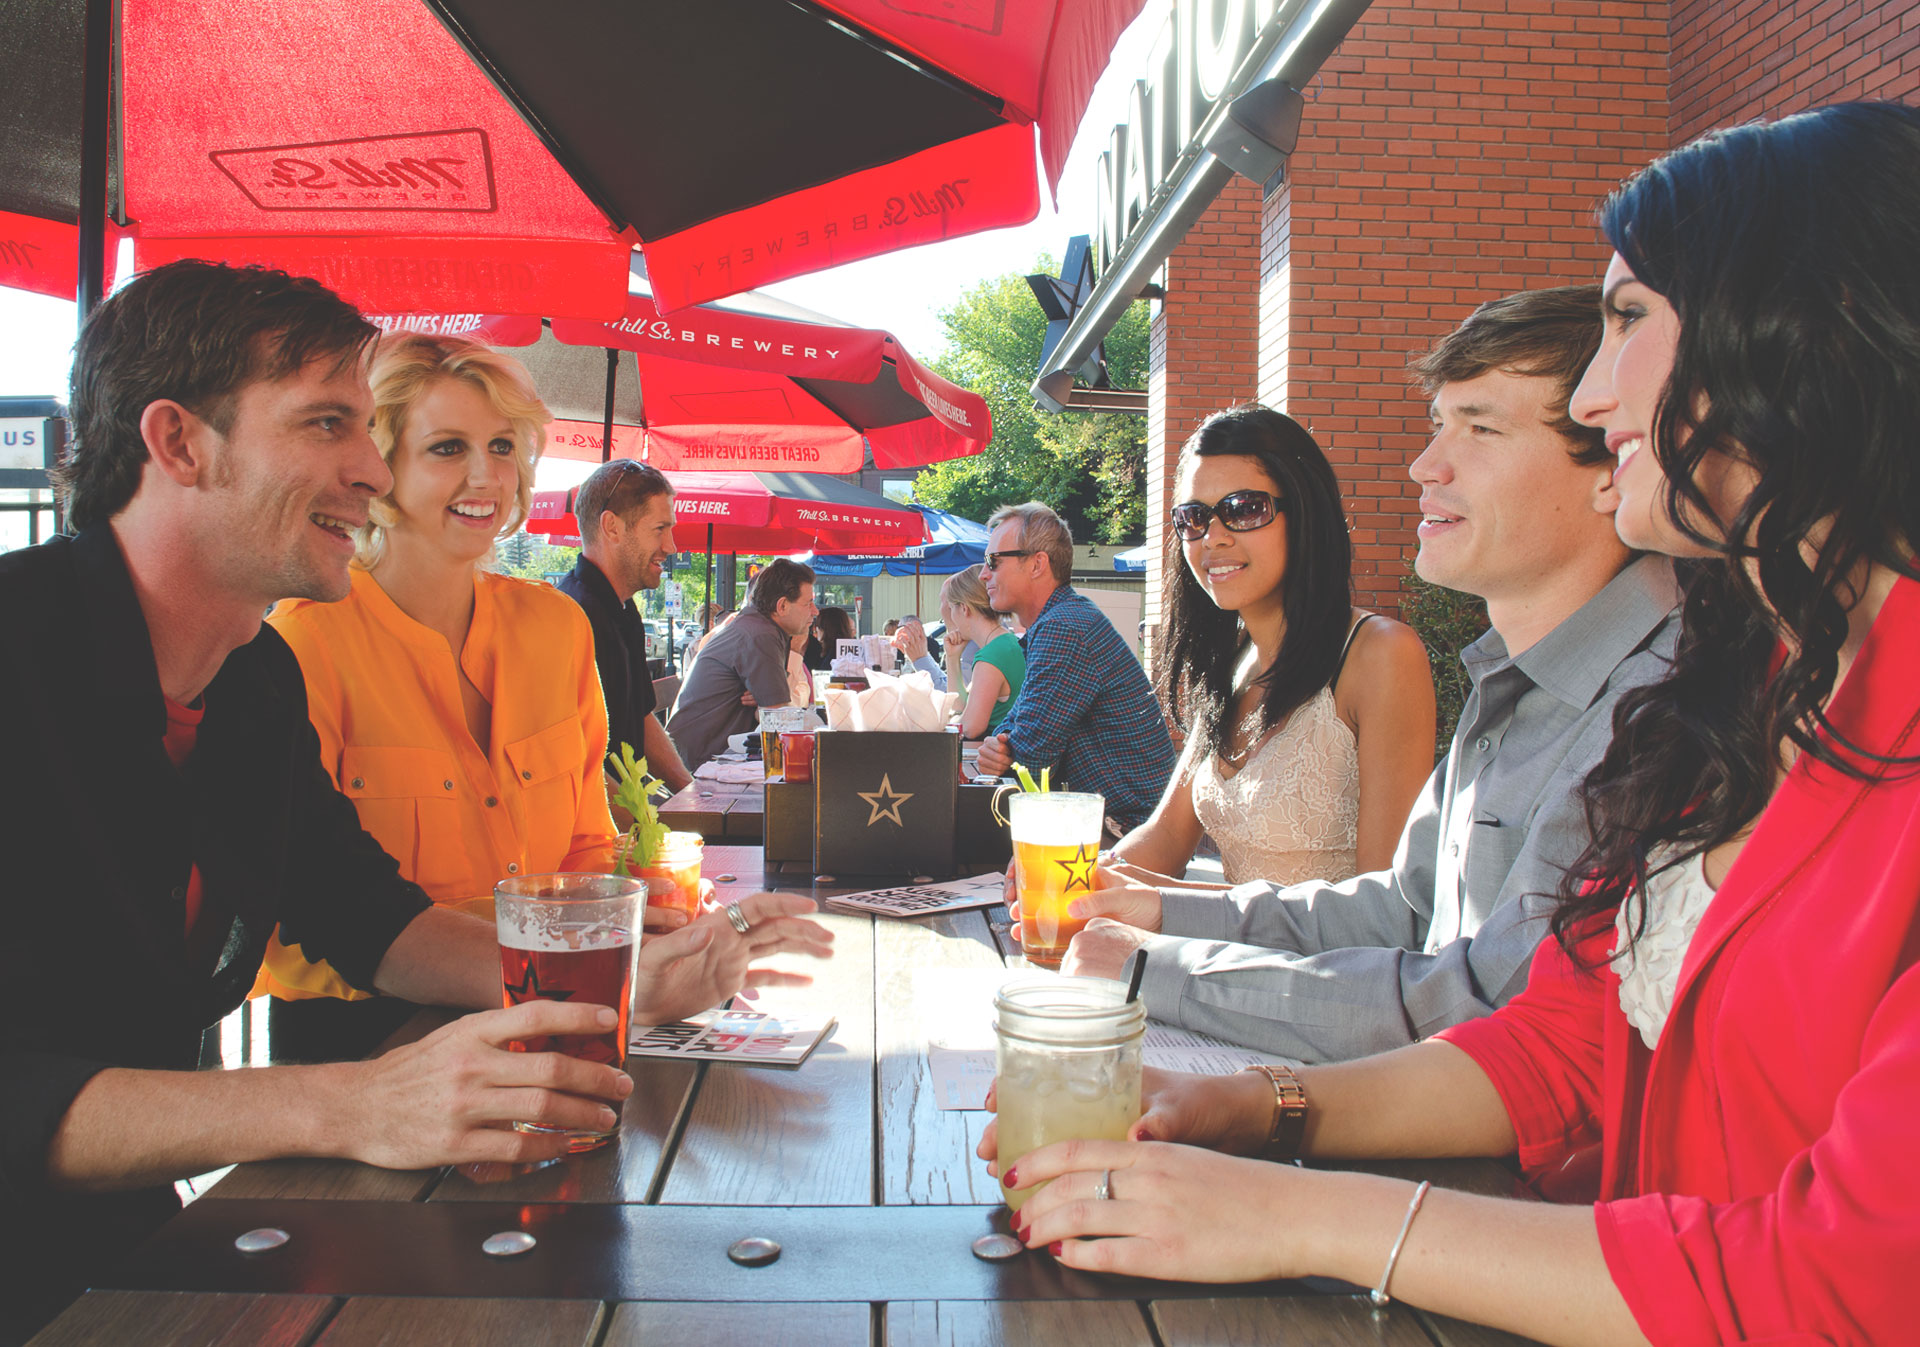 Enjoy time with friends on the patio at National on 17th